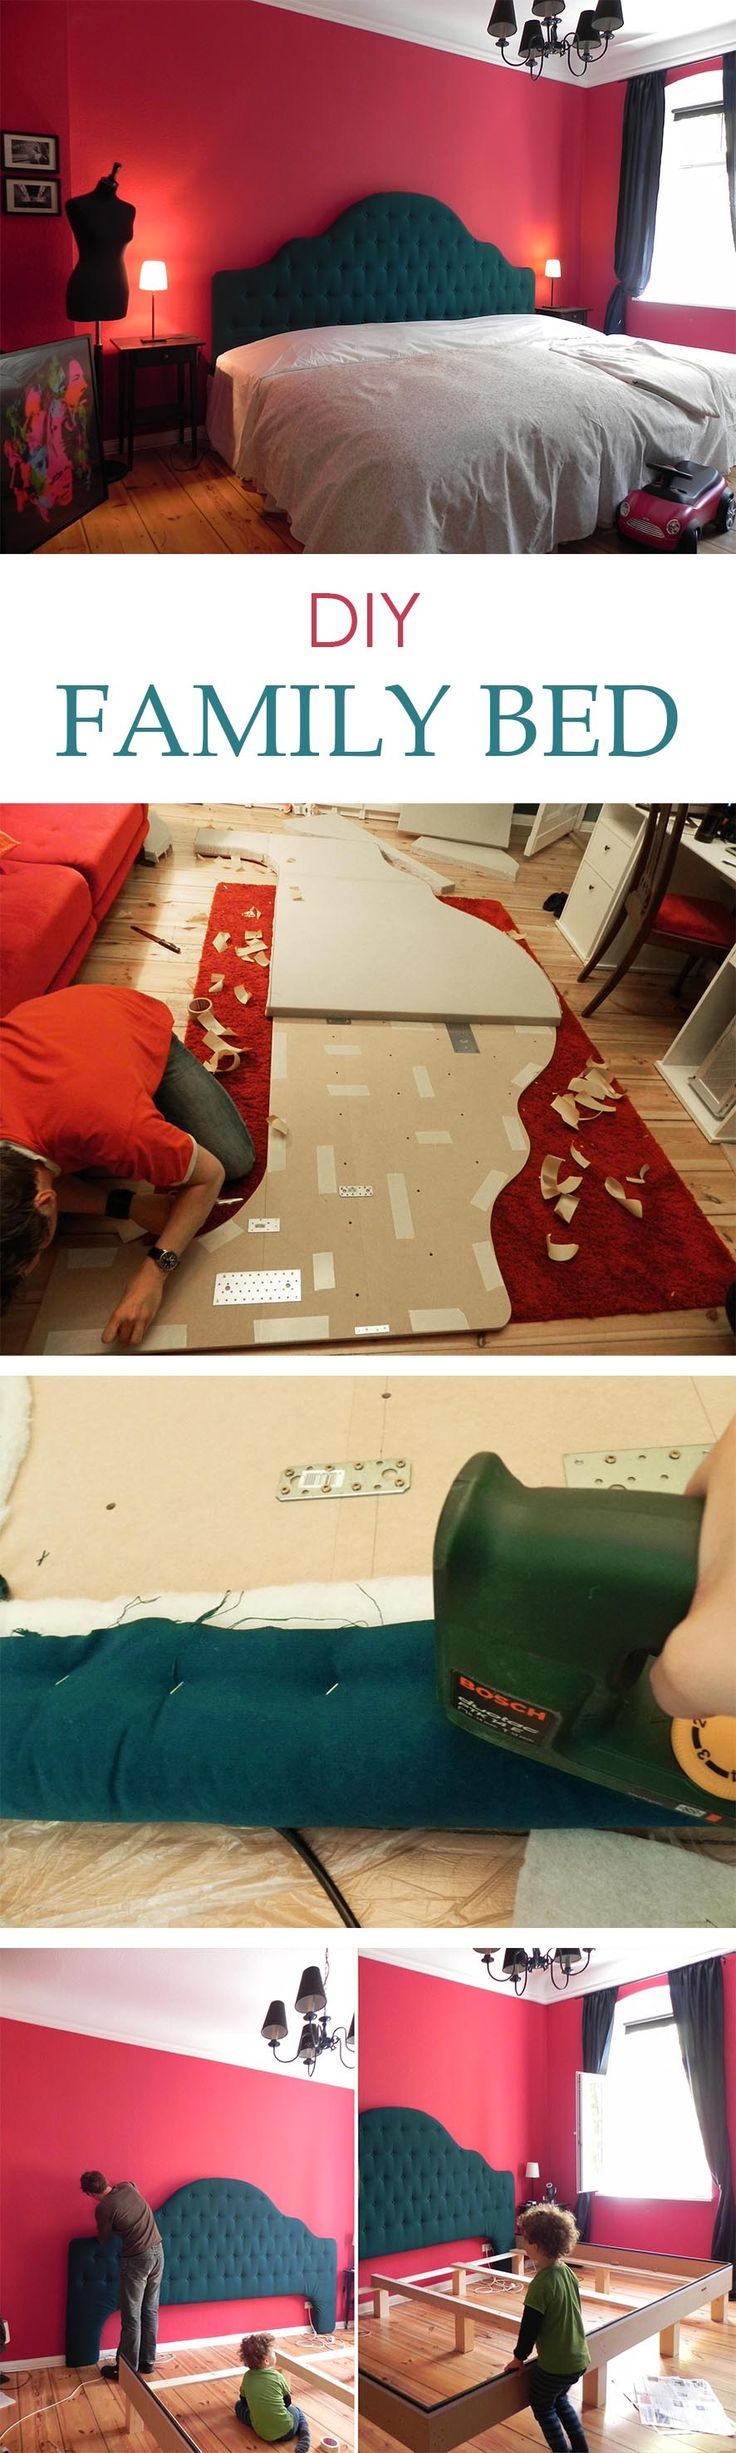 Building instructions for a HUGE family bed with a diamond tufted headboard (in German and English) #familybed #cosleeping #headboard #diy #large via artandalmonds.com